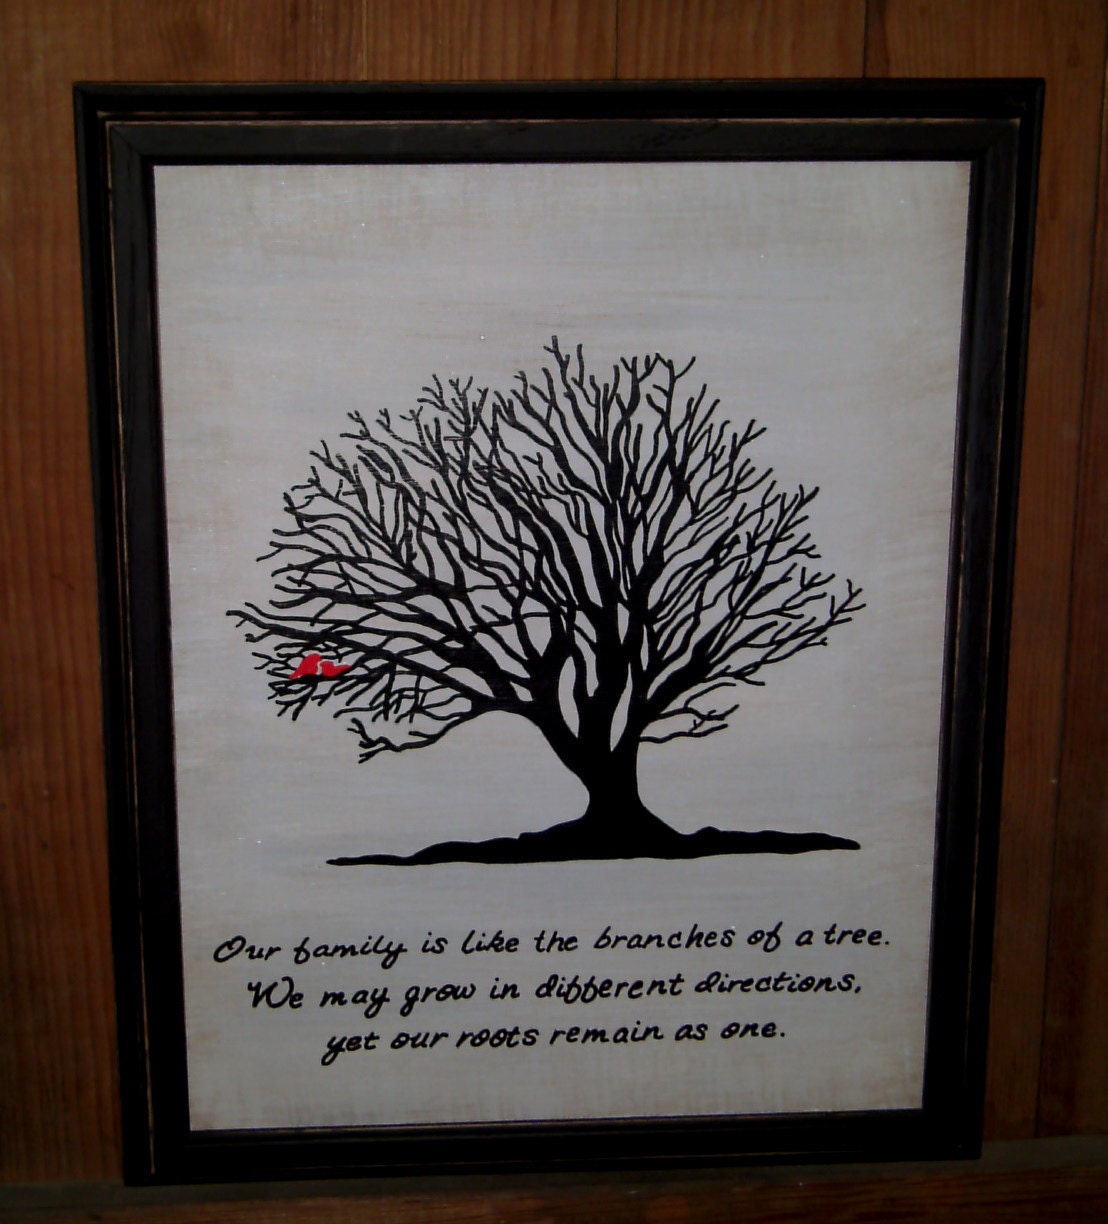 Family Tree Quotes Family tree